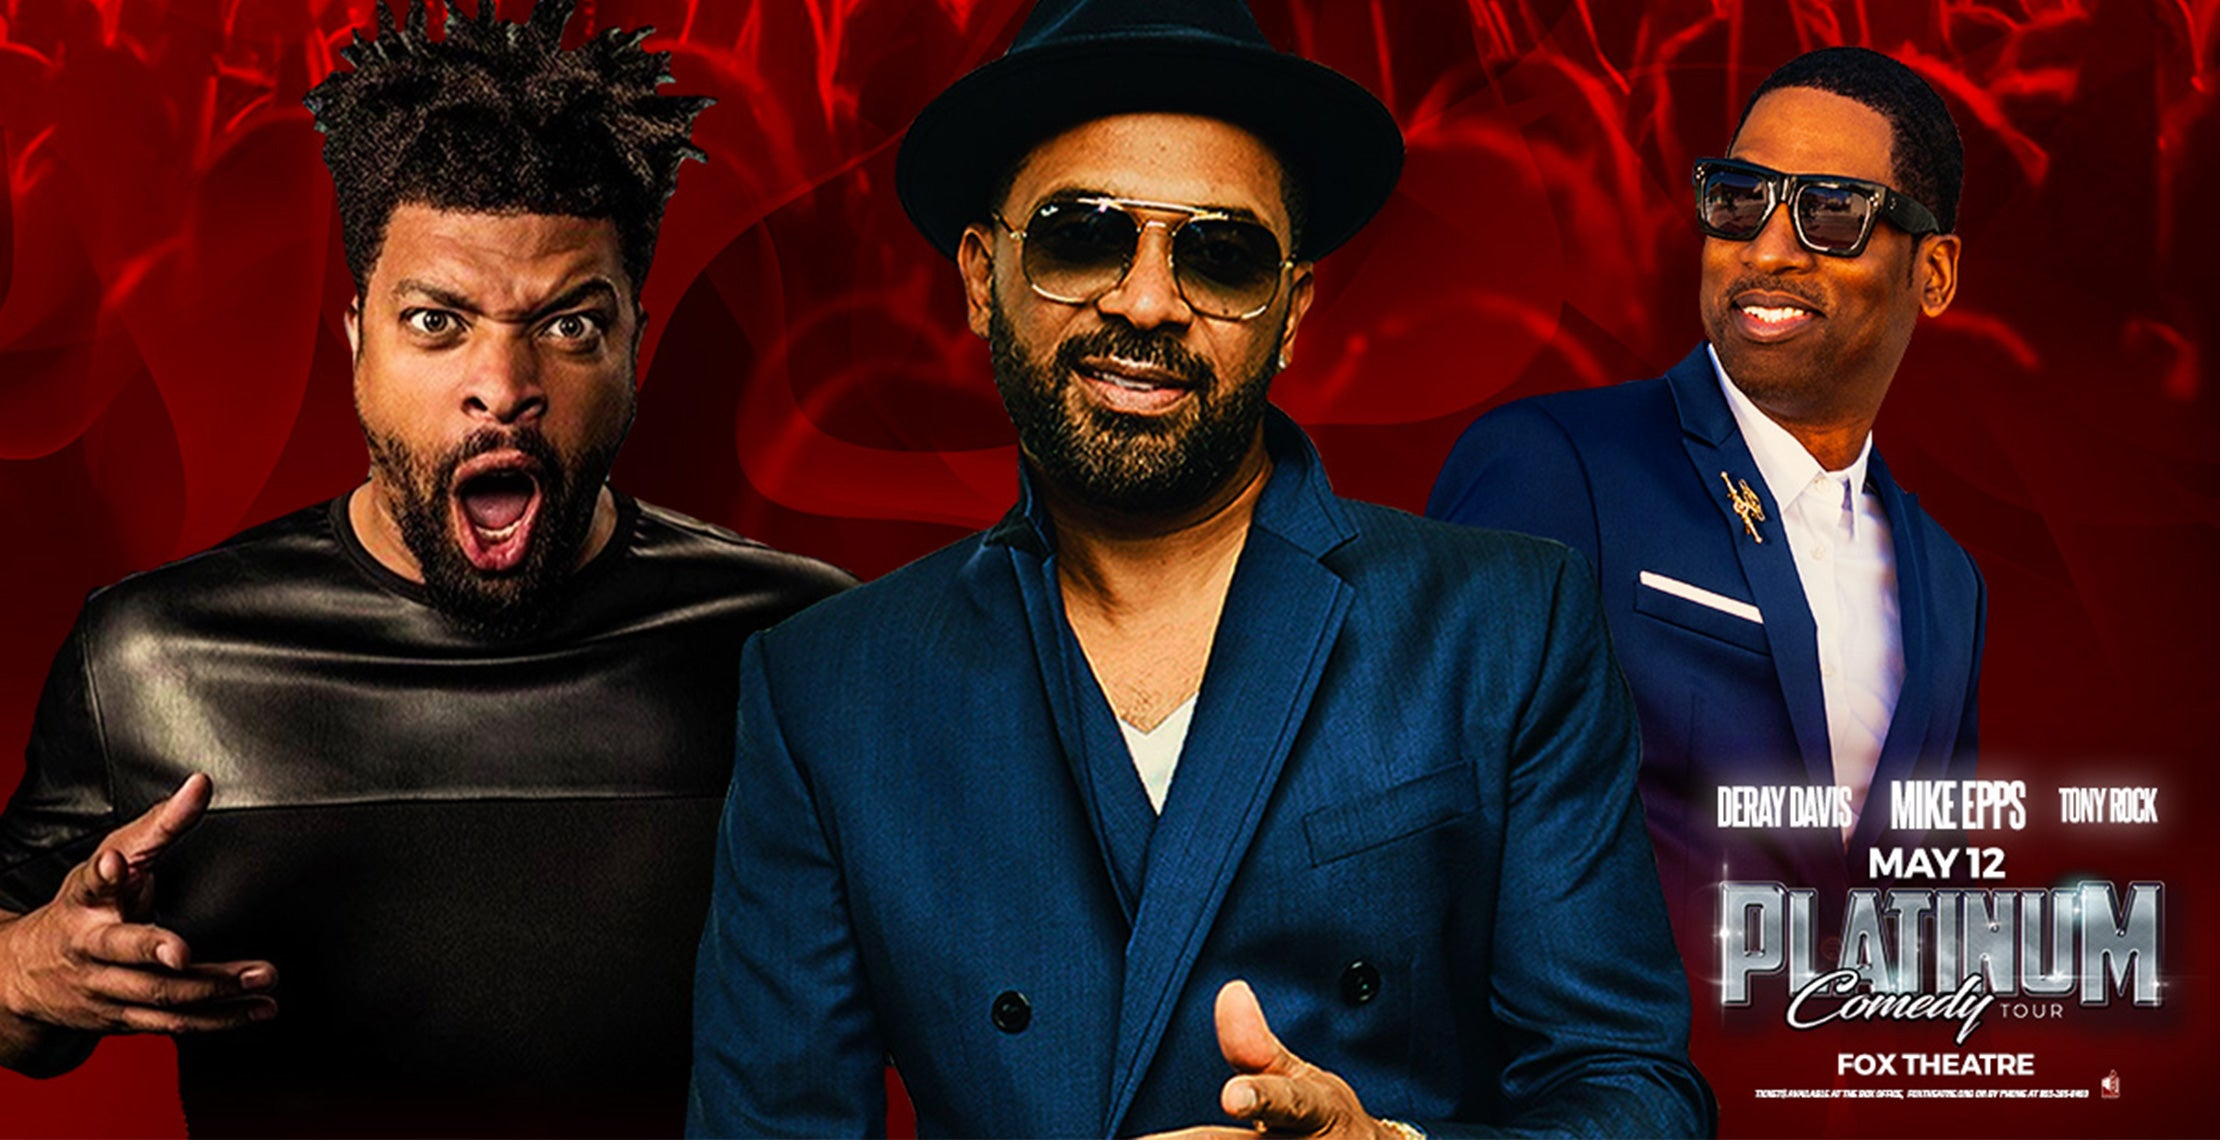 Mike Epps, DeRay Davis and Tony Rock